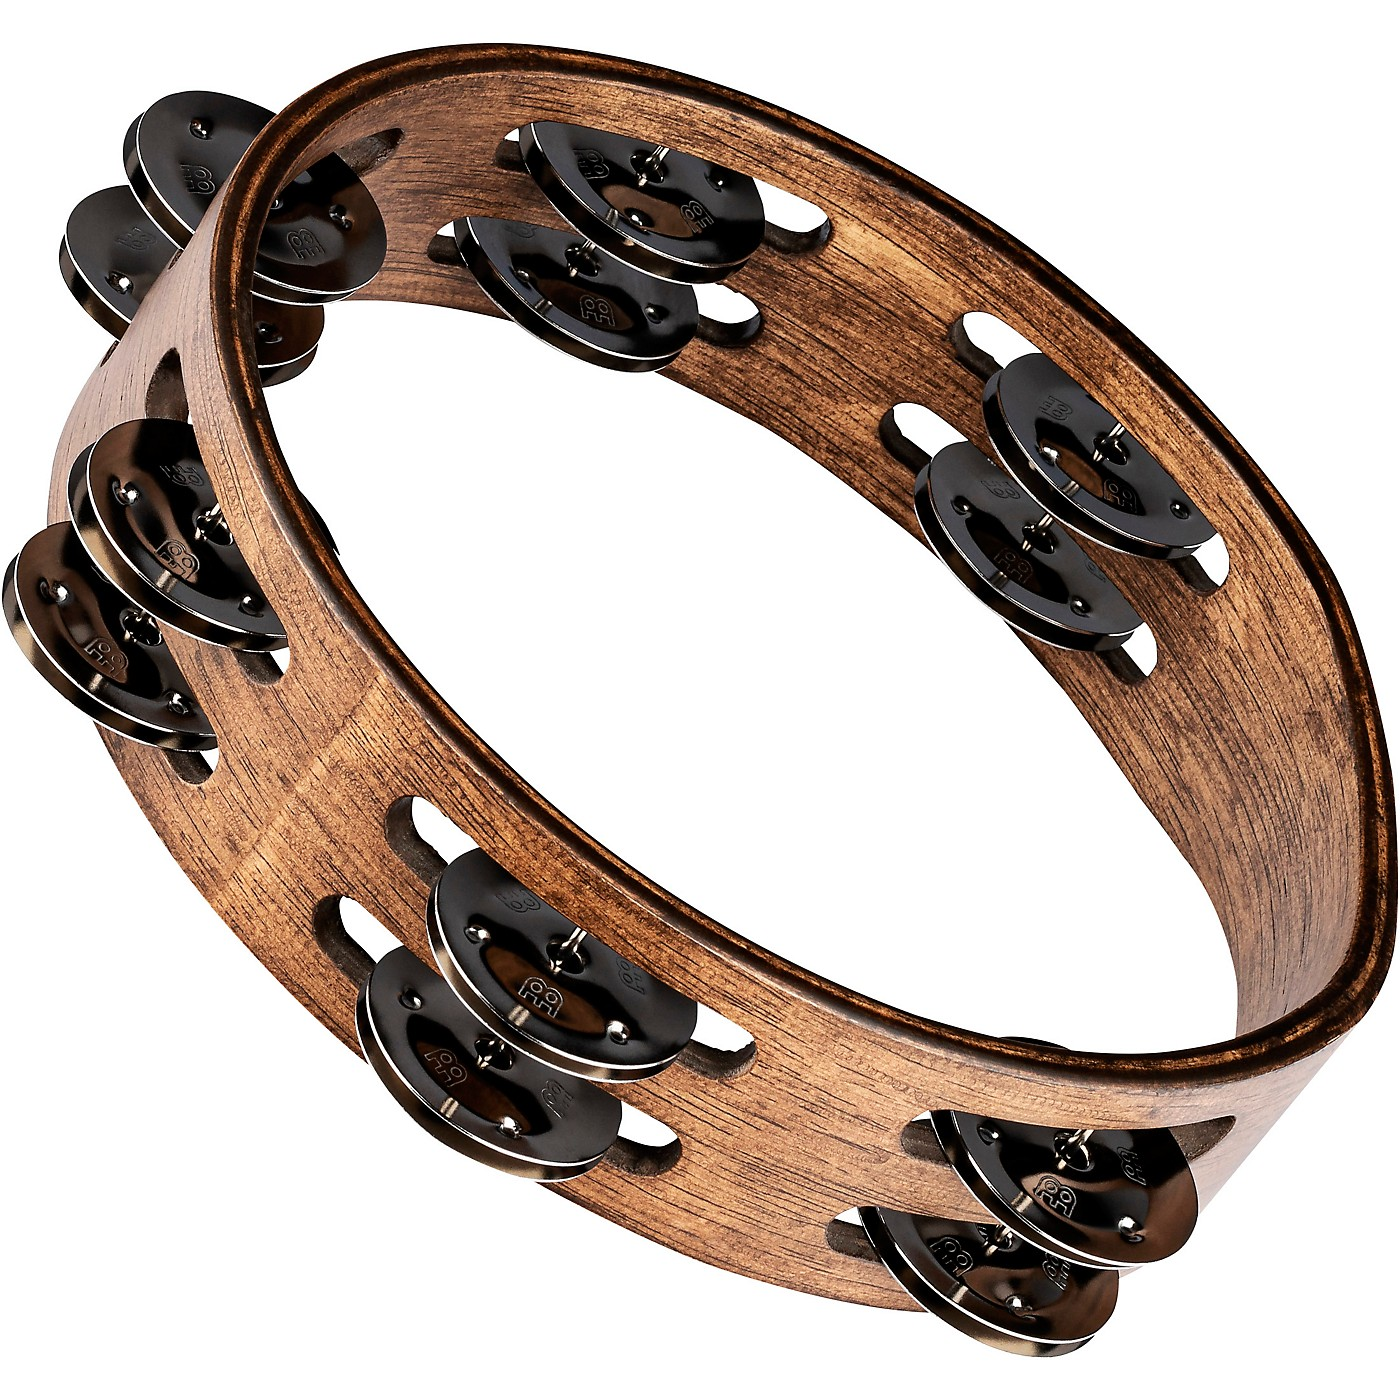 Meinl Compact Wood Tambourine with Double Row Stainless Steel Jingles thumbnail